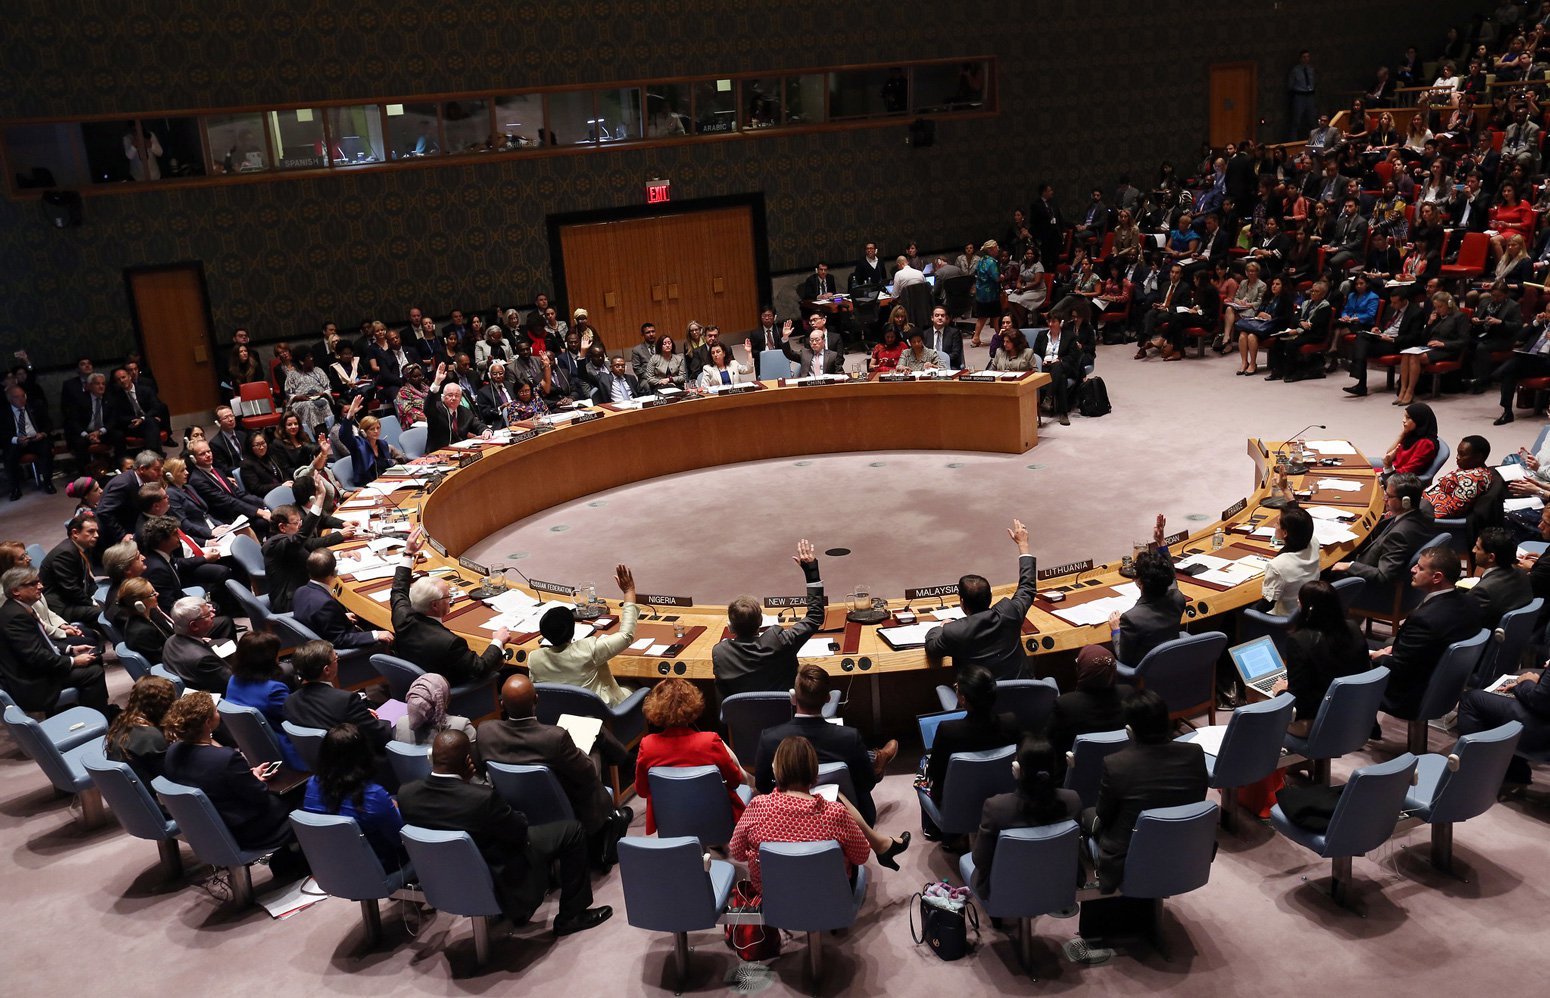 The UN Security Council adopts resolution Resolution 2242 (2015)